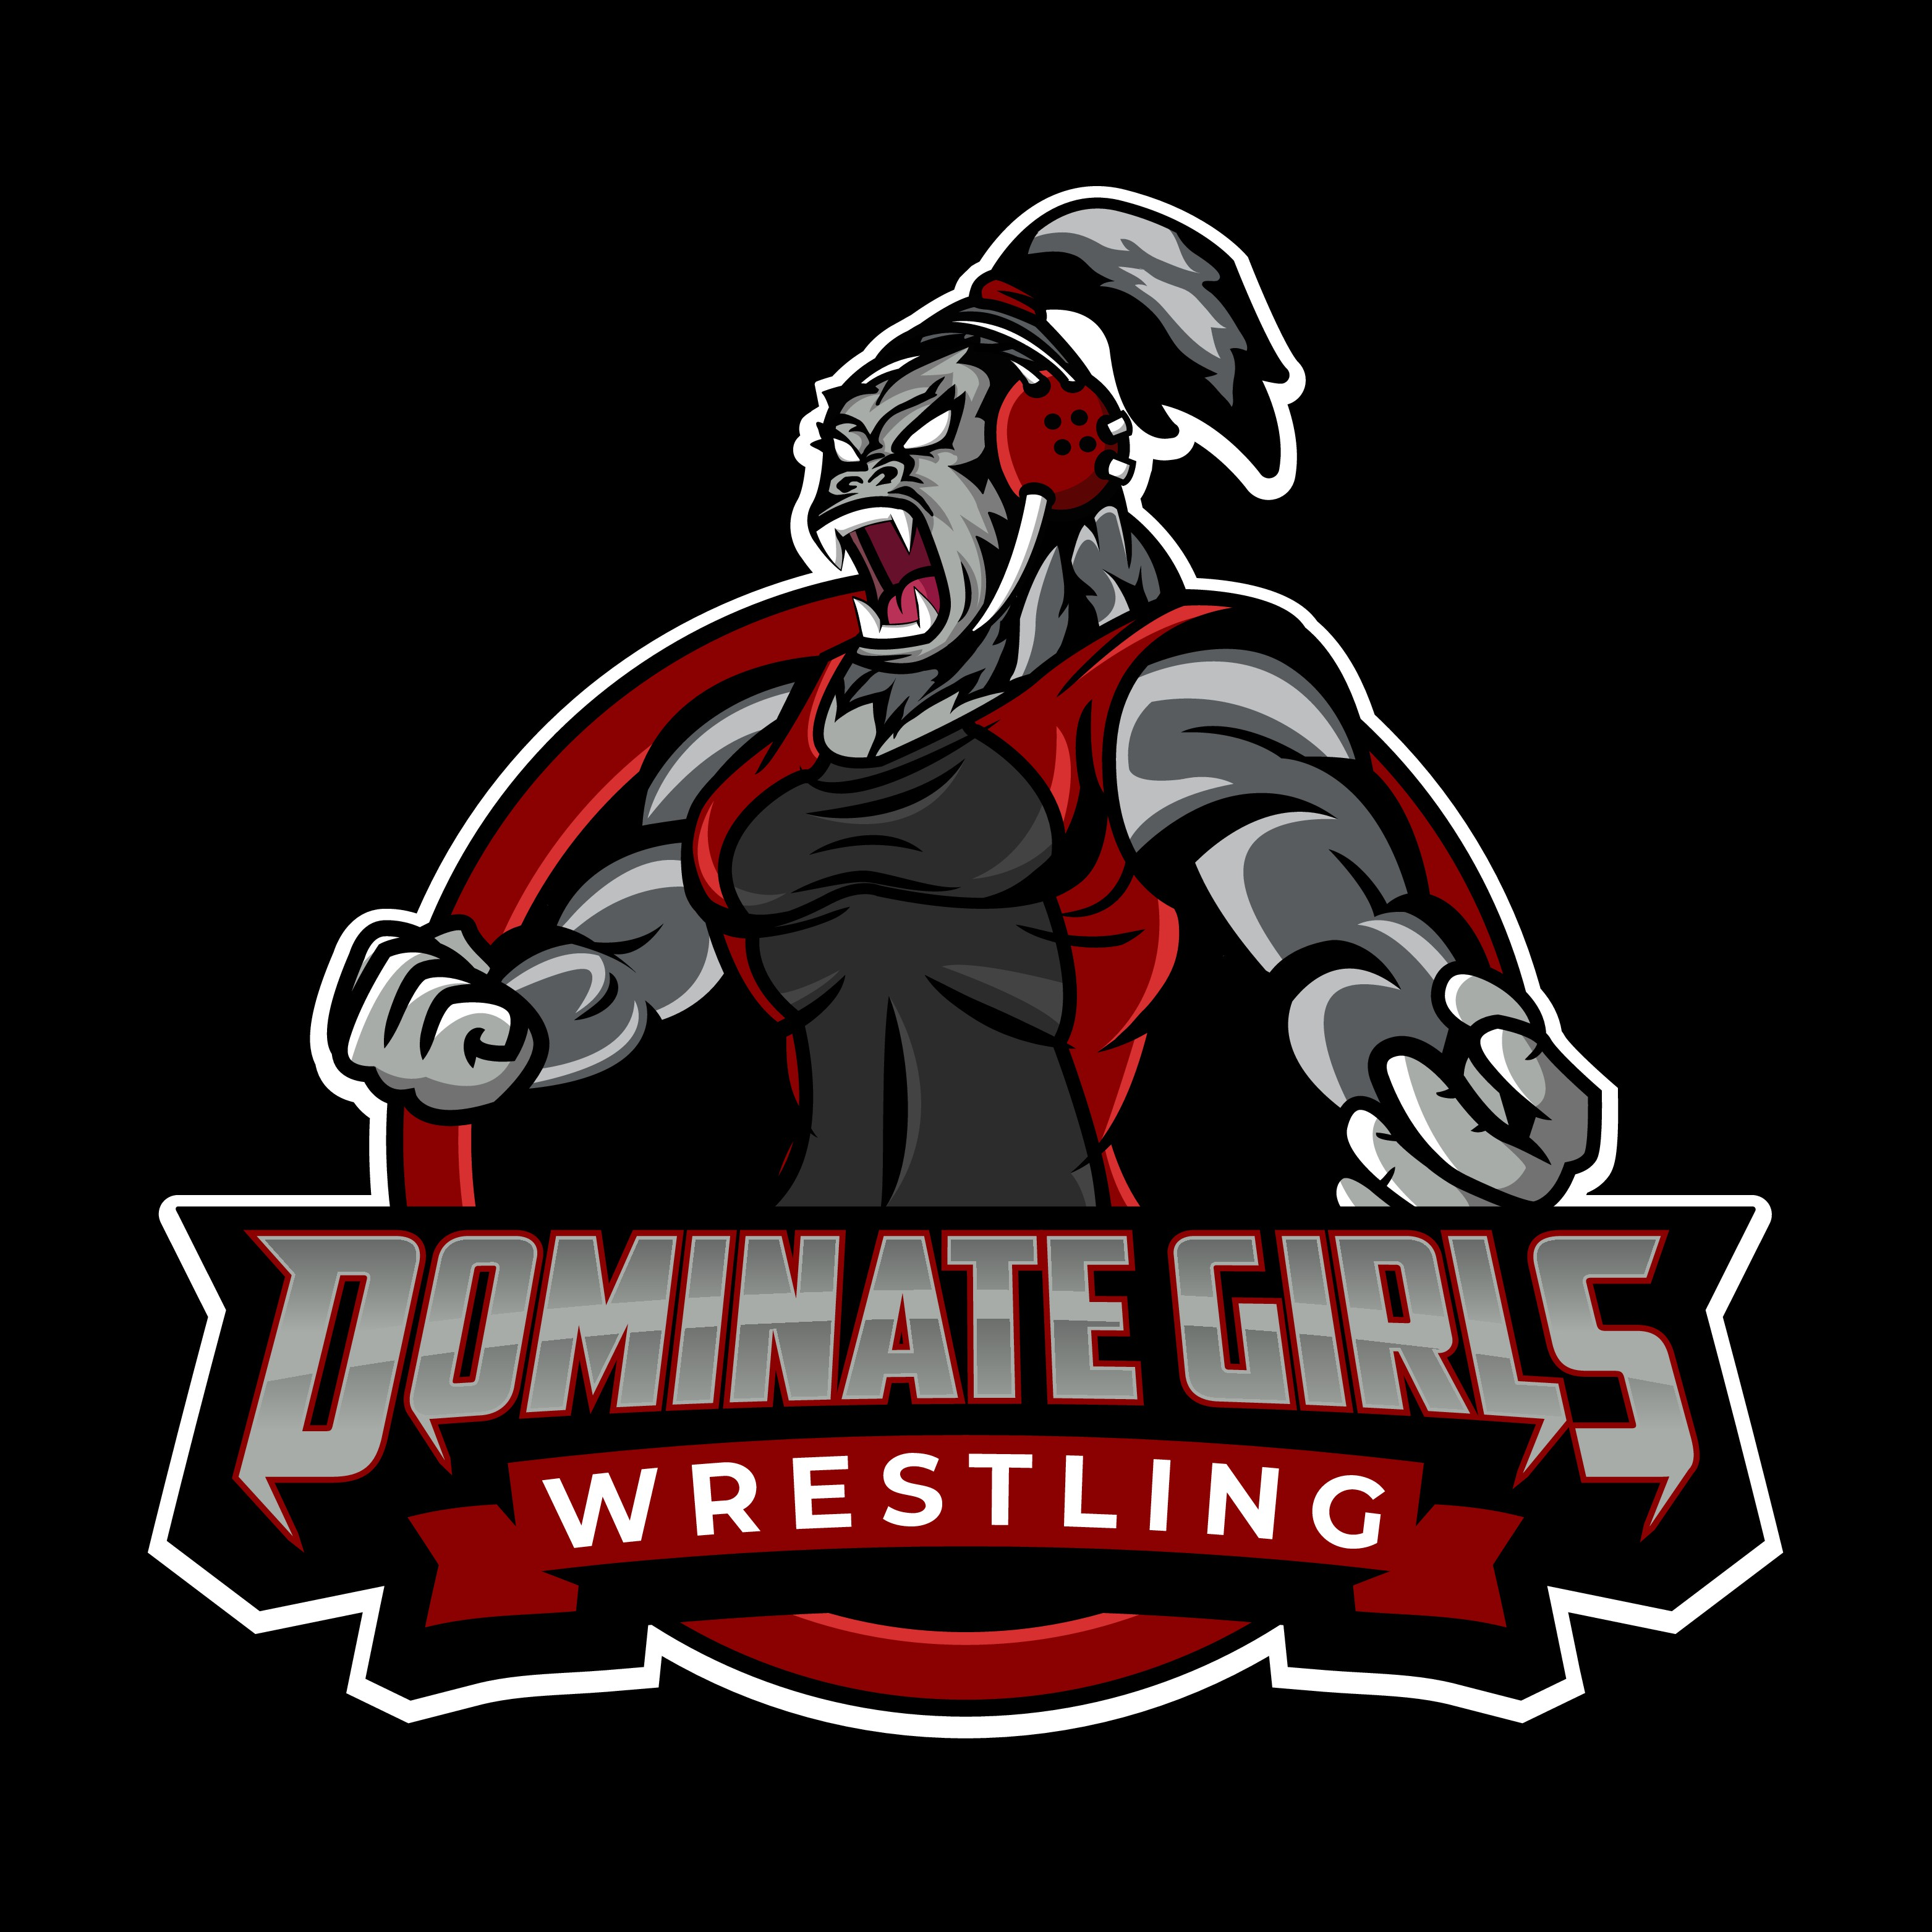 Girls Wrestling Club, breaking barriers and motivating young girls to join the sport